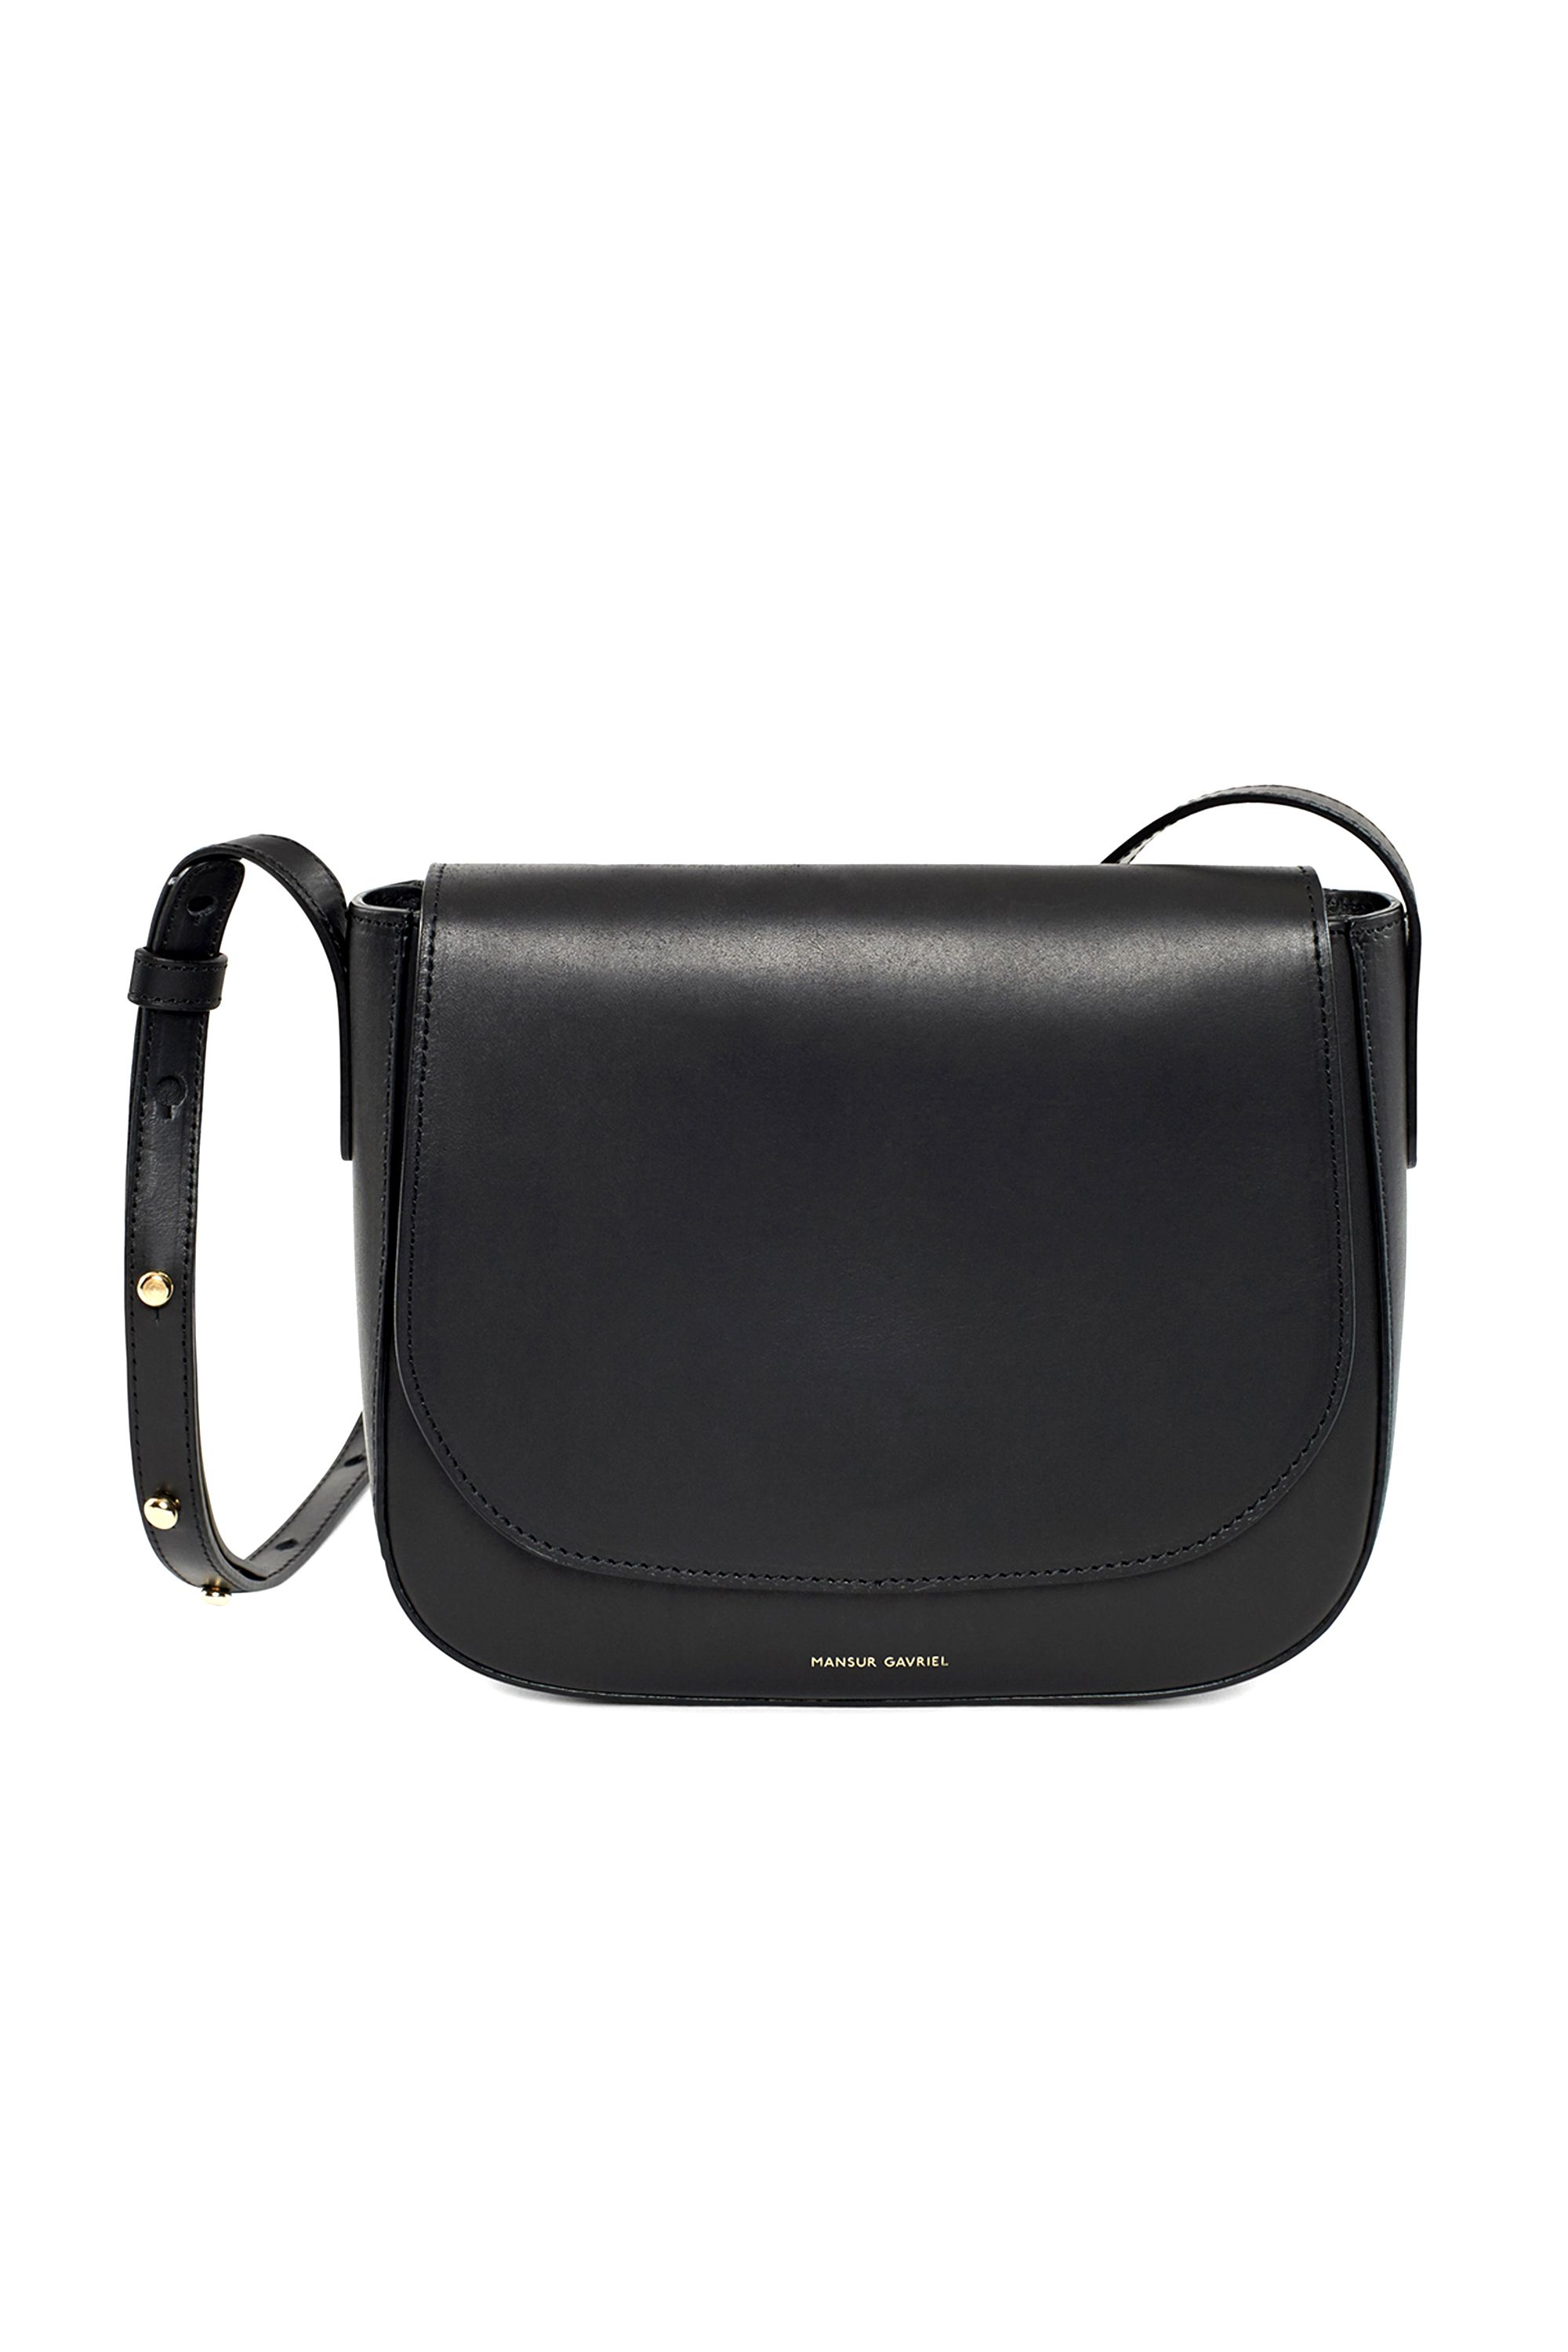 2b0d3f3a6ff9d One of 20 Black Crossbody Bags That Work With Everything - MANSUR GAVRIEL  (=)